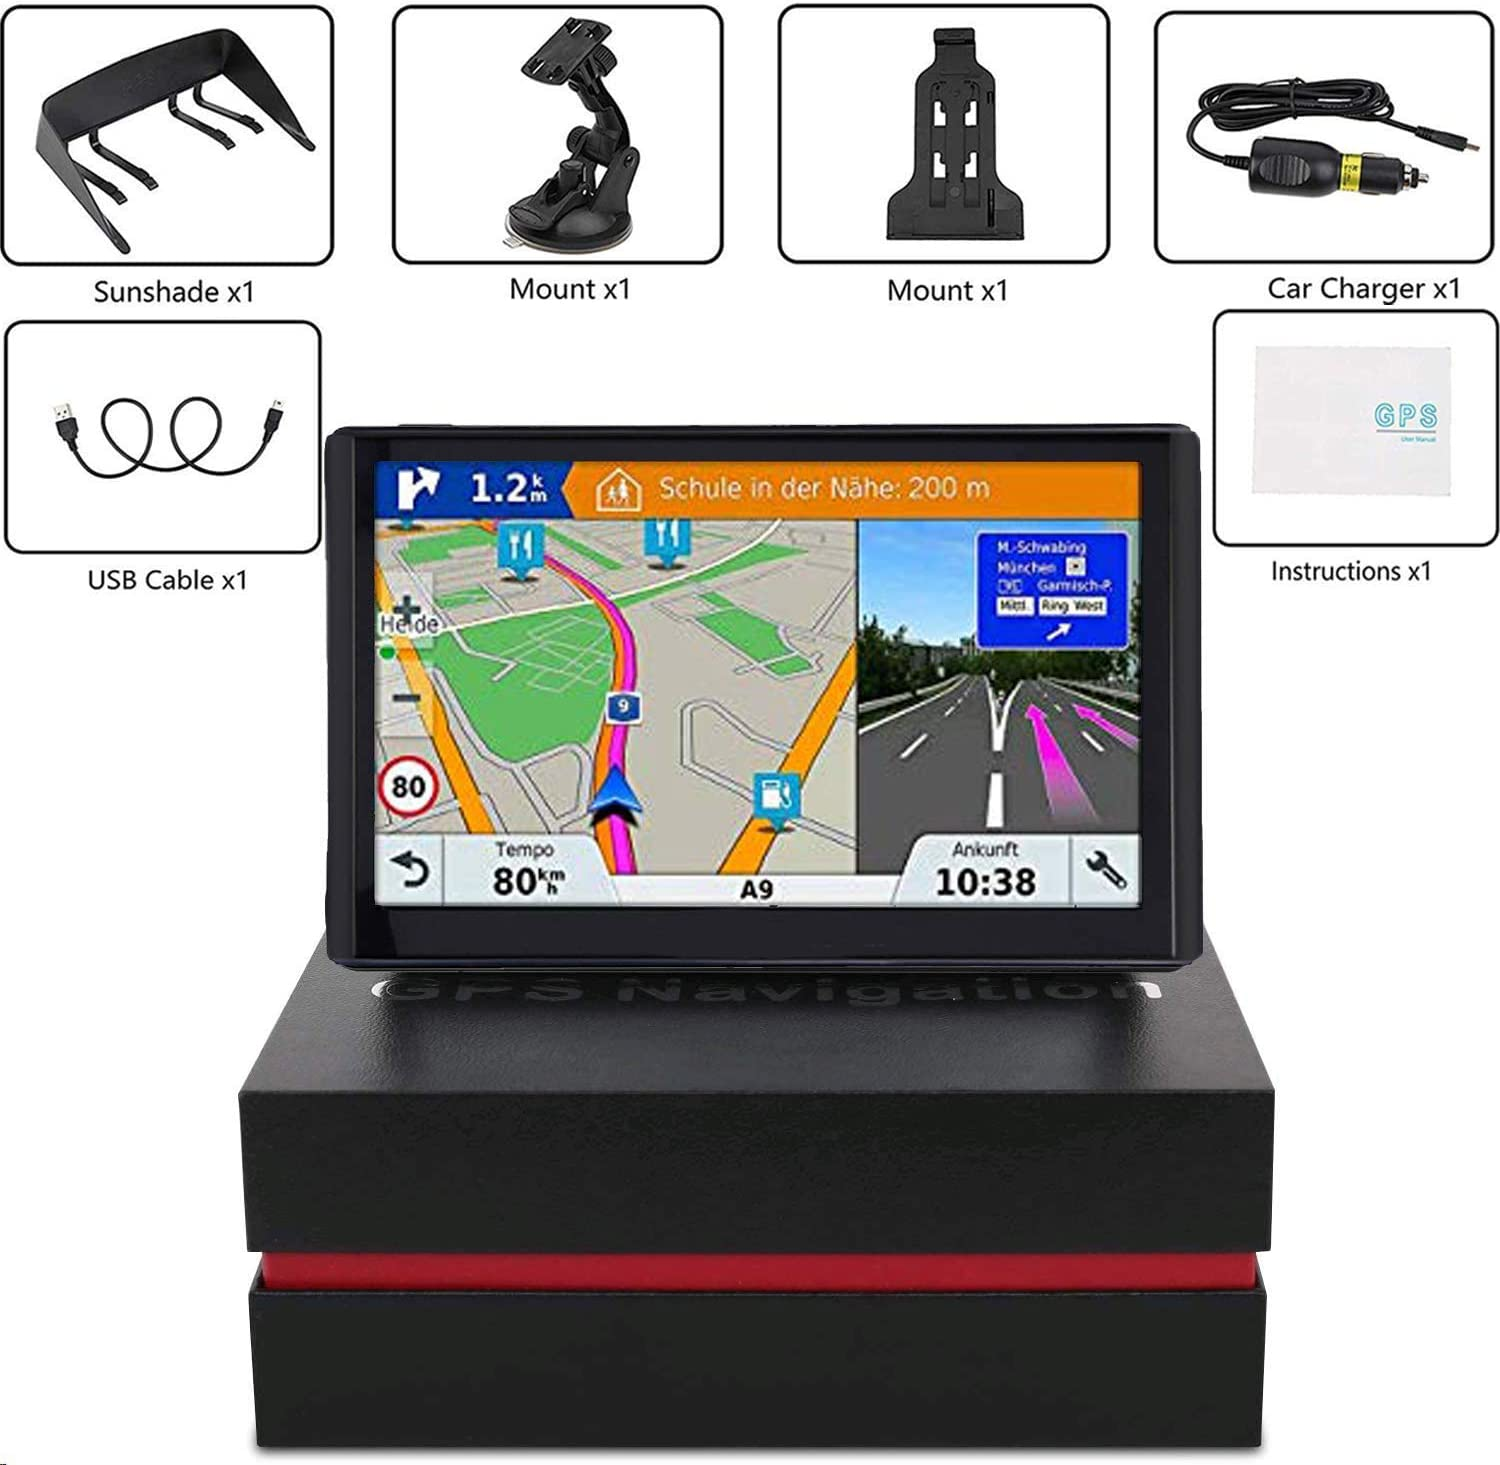 Voice Turn Direction Guidance Support Speed and Red Light Warning 2020 Map 7 inch Touch Screen Car GPS 256-8GB Pre-Installed North America Lifetime map Free Update GPS Navigation for Car